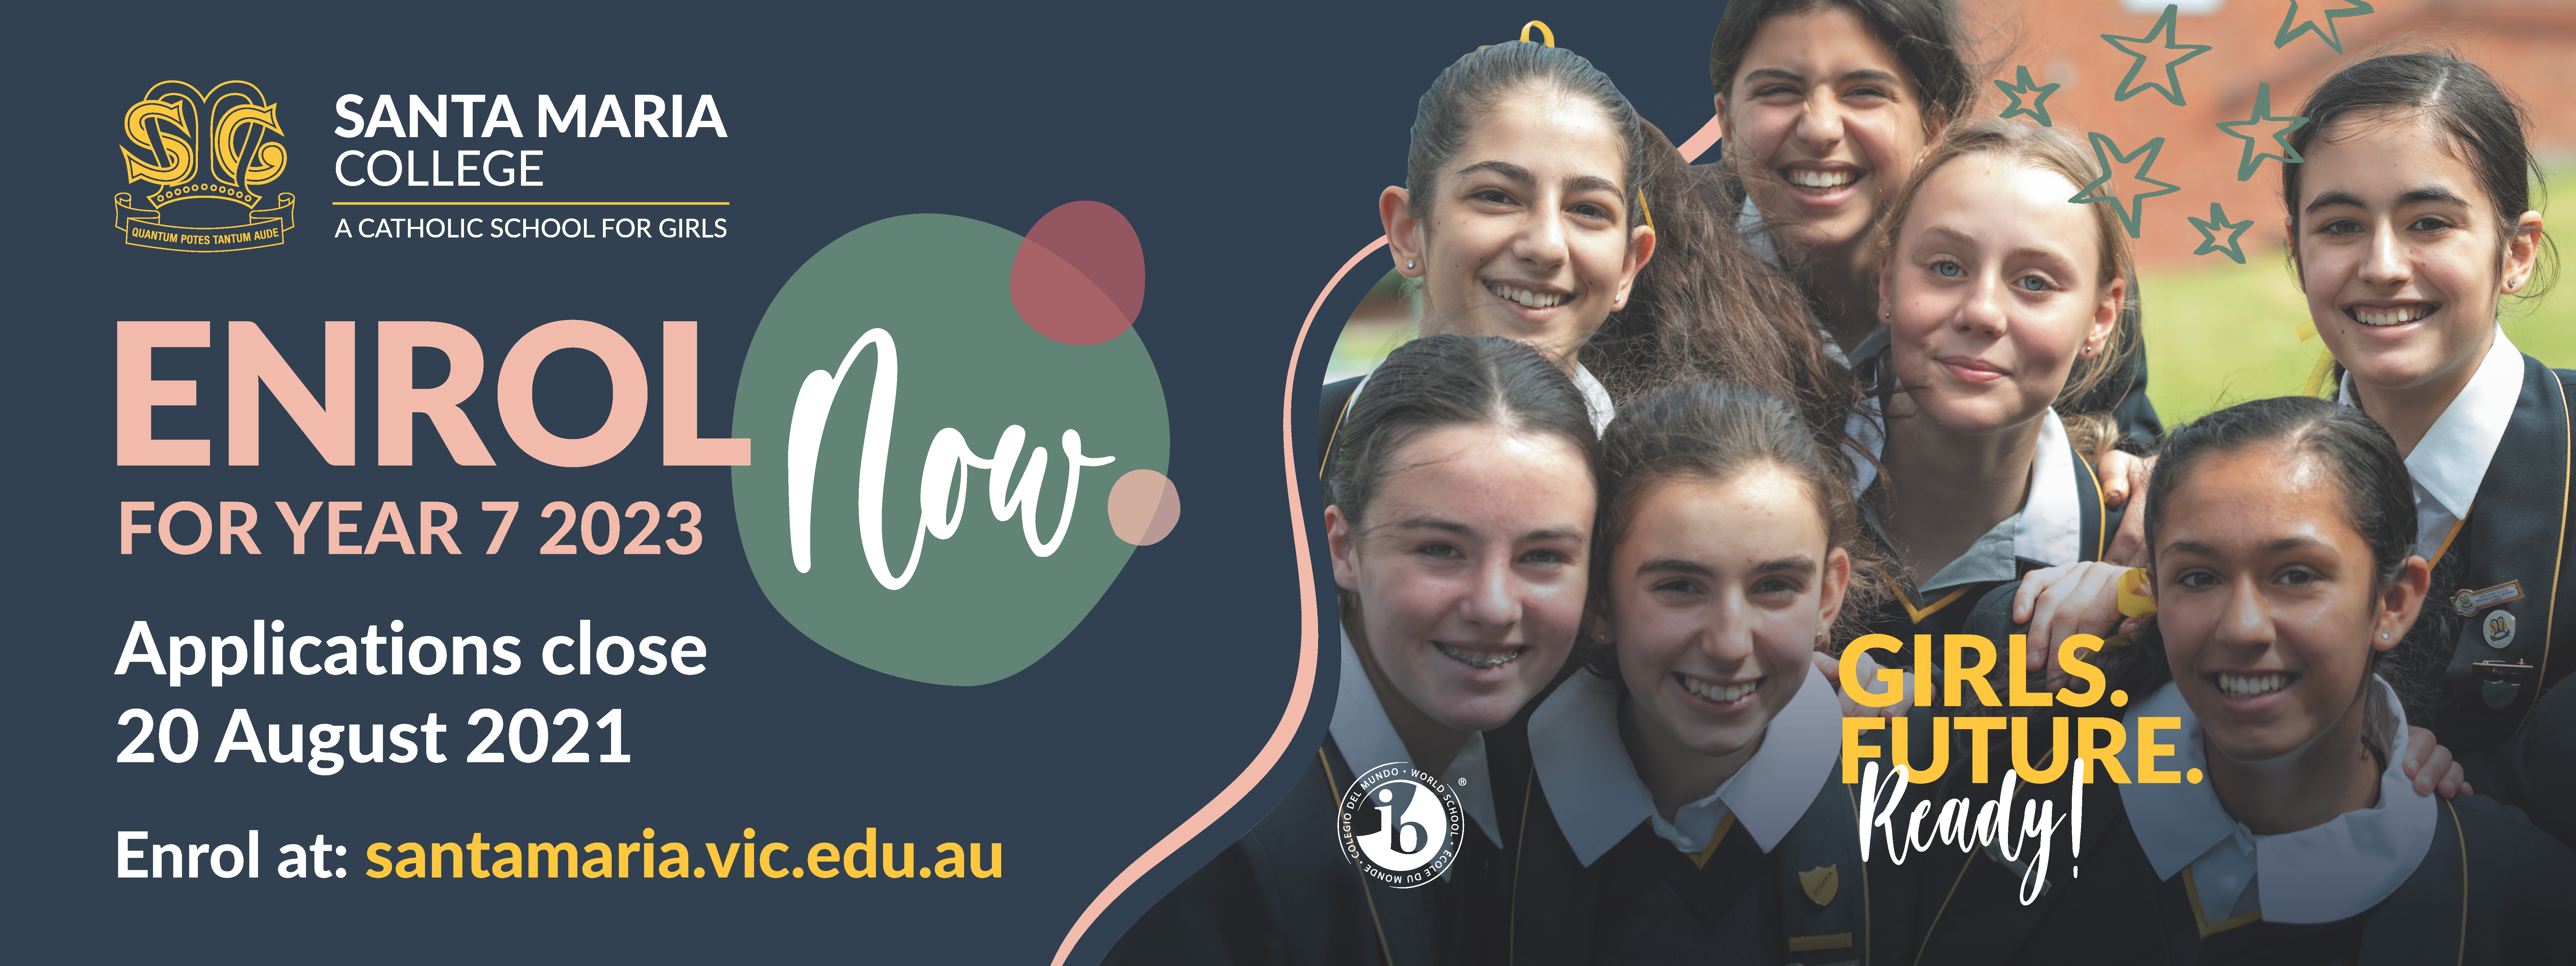 Enrol Now for Year 7 2023